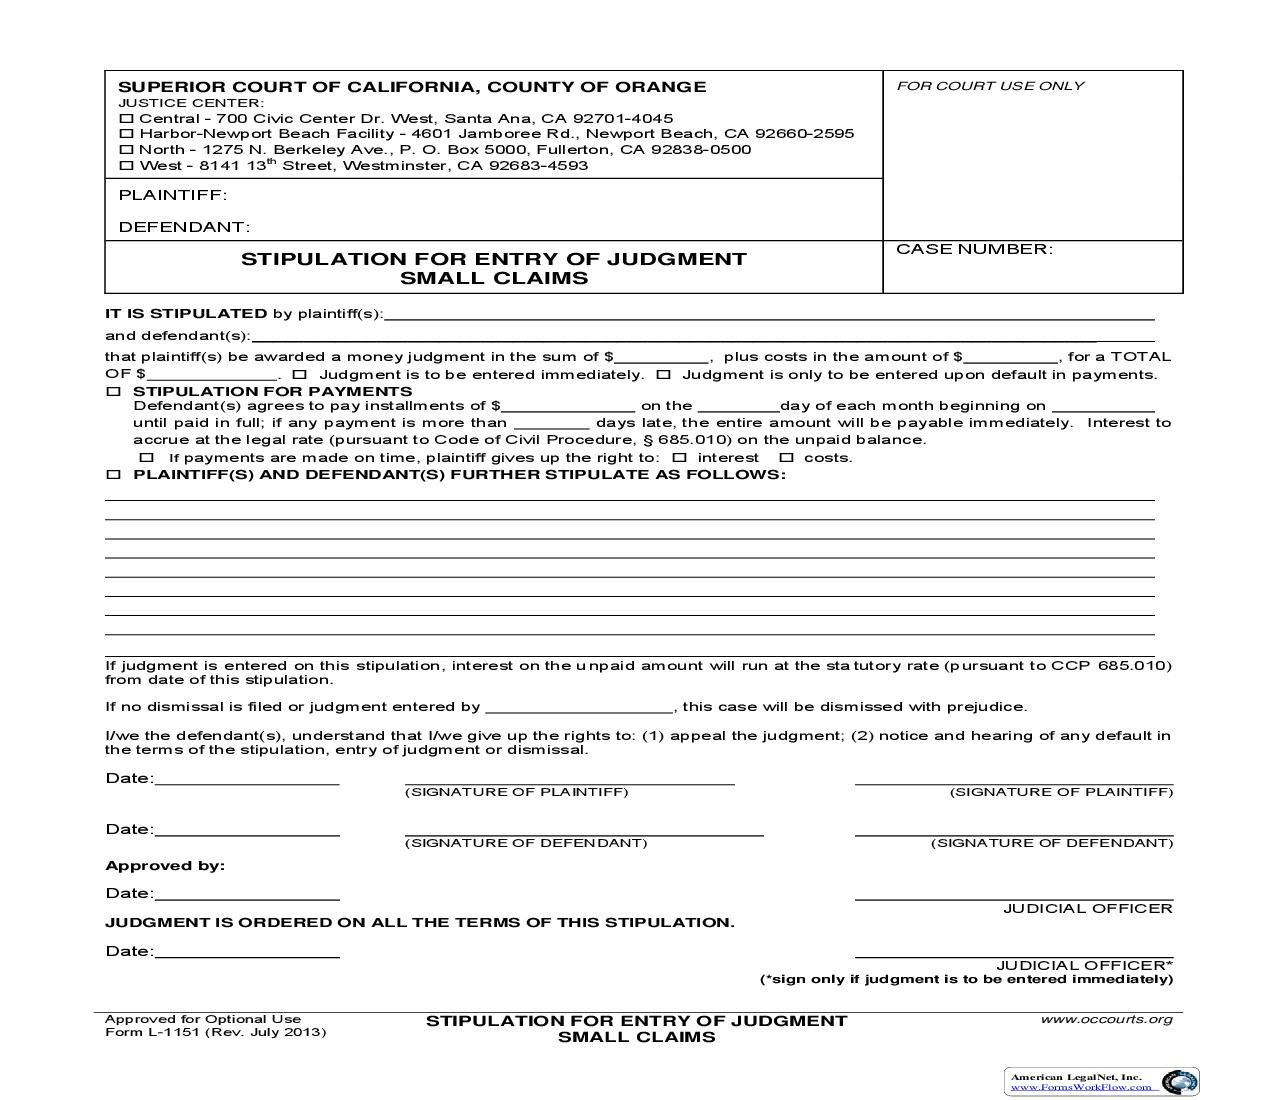 Stipulation For Entry Of Judgment-Small Claims {L1151} | Pdf Fpdf Doc Docx | California